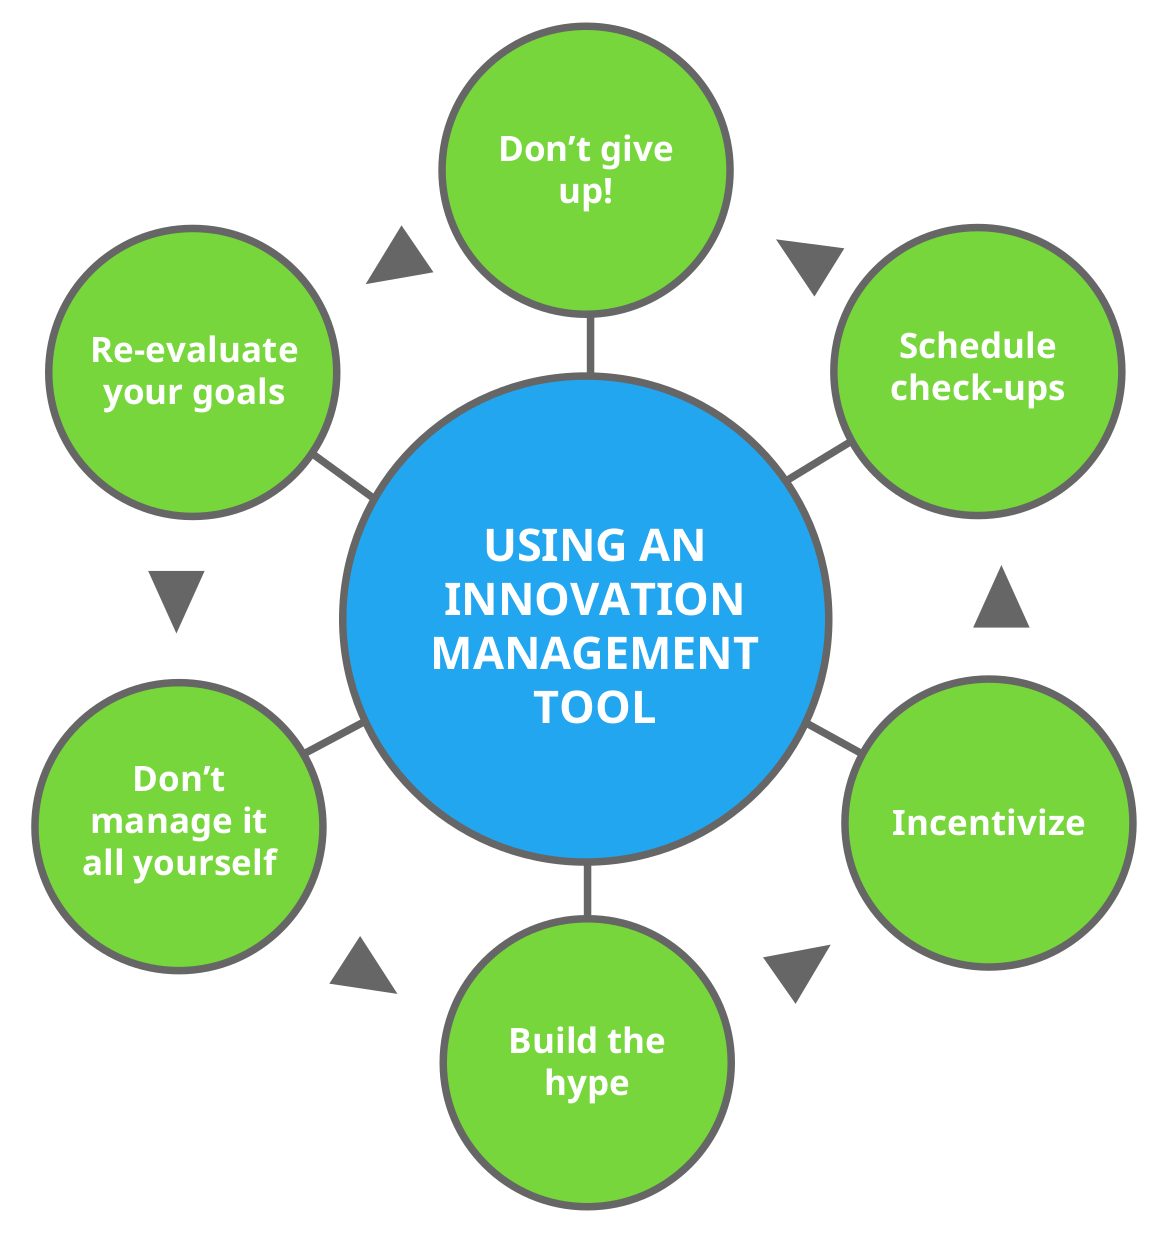 Innovation Management Tools Infopic 2